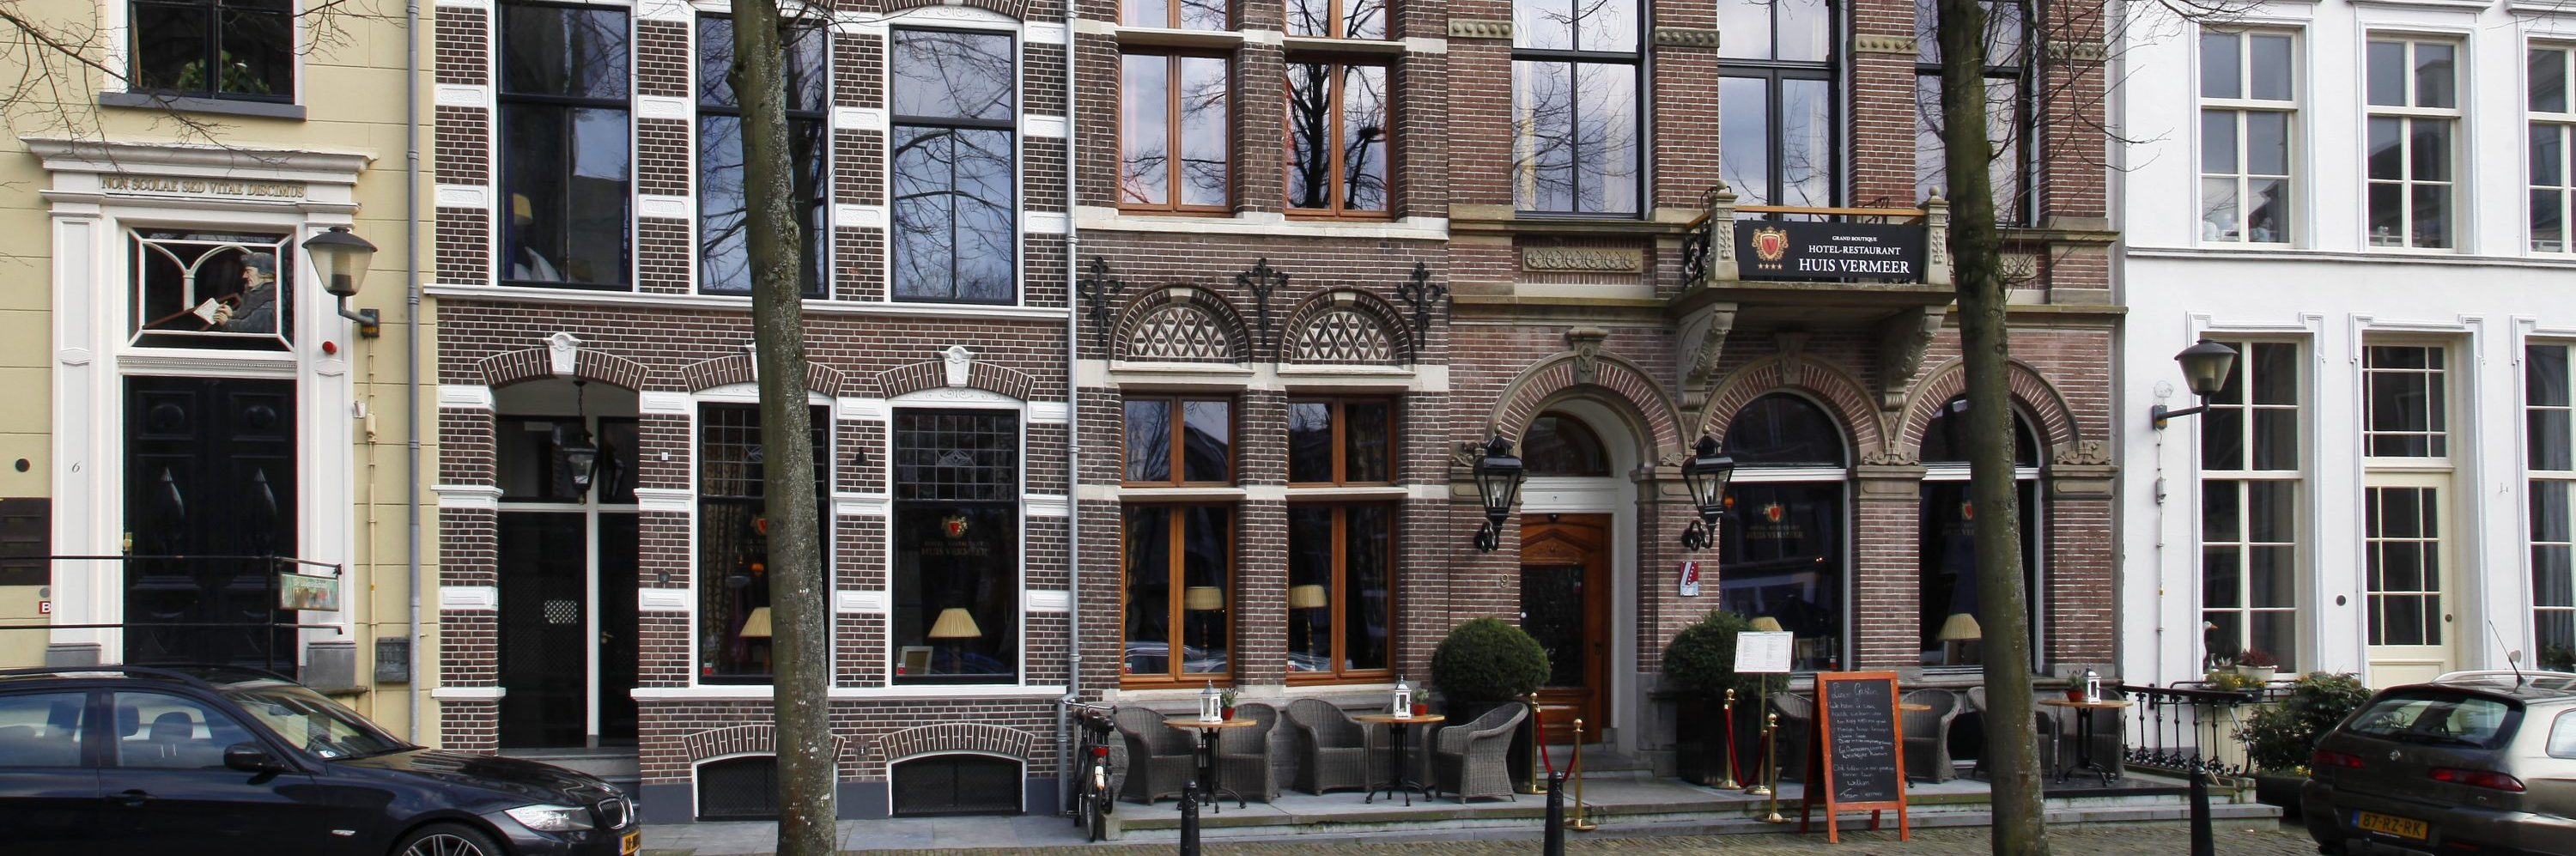 huis-vermeer-deventer